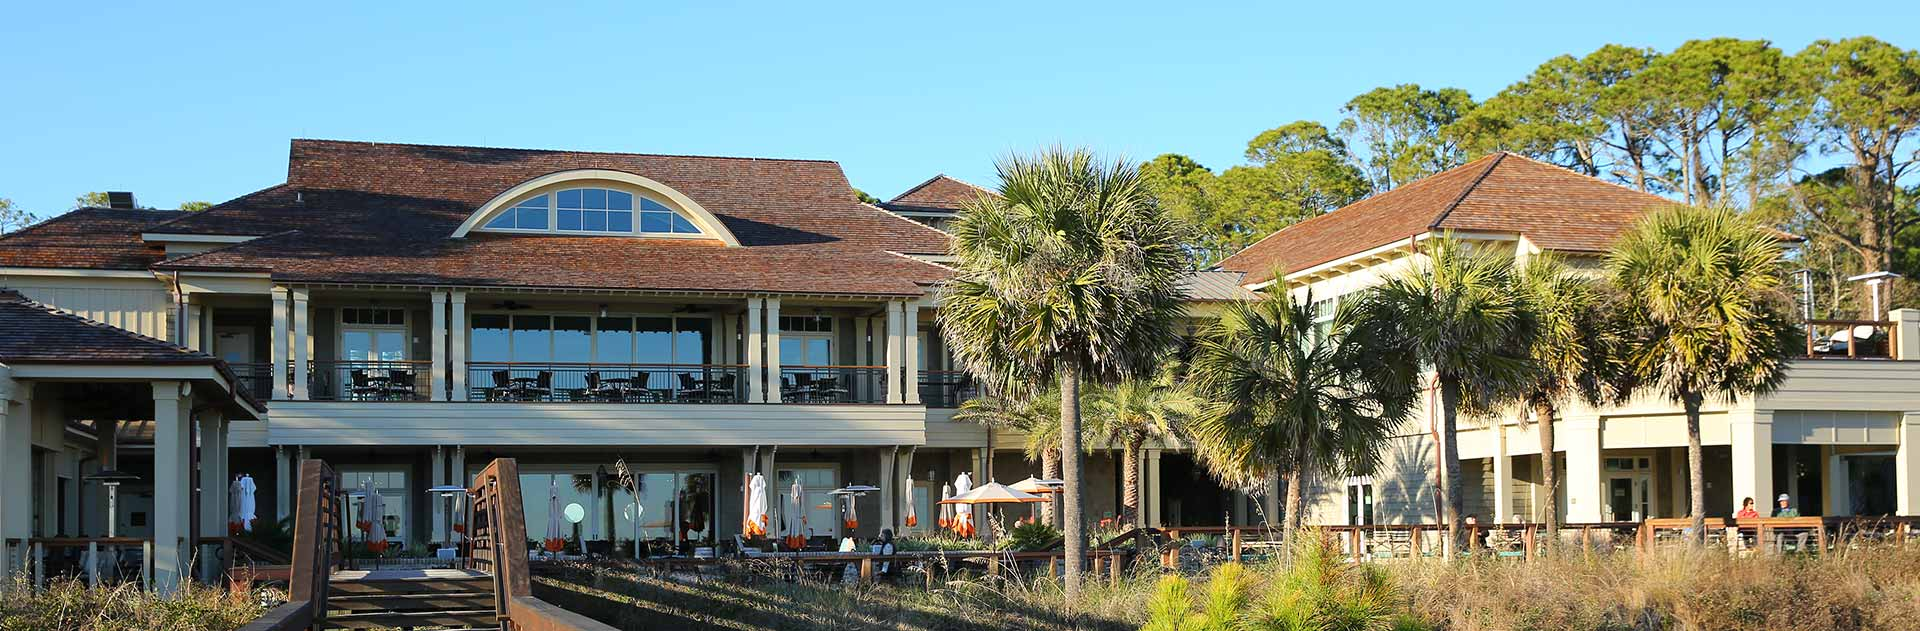 Sea Pines Plantation Beach Club